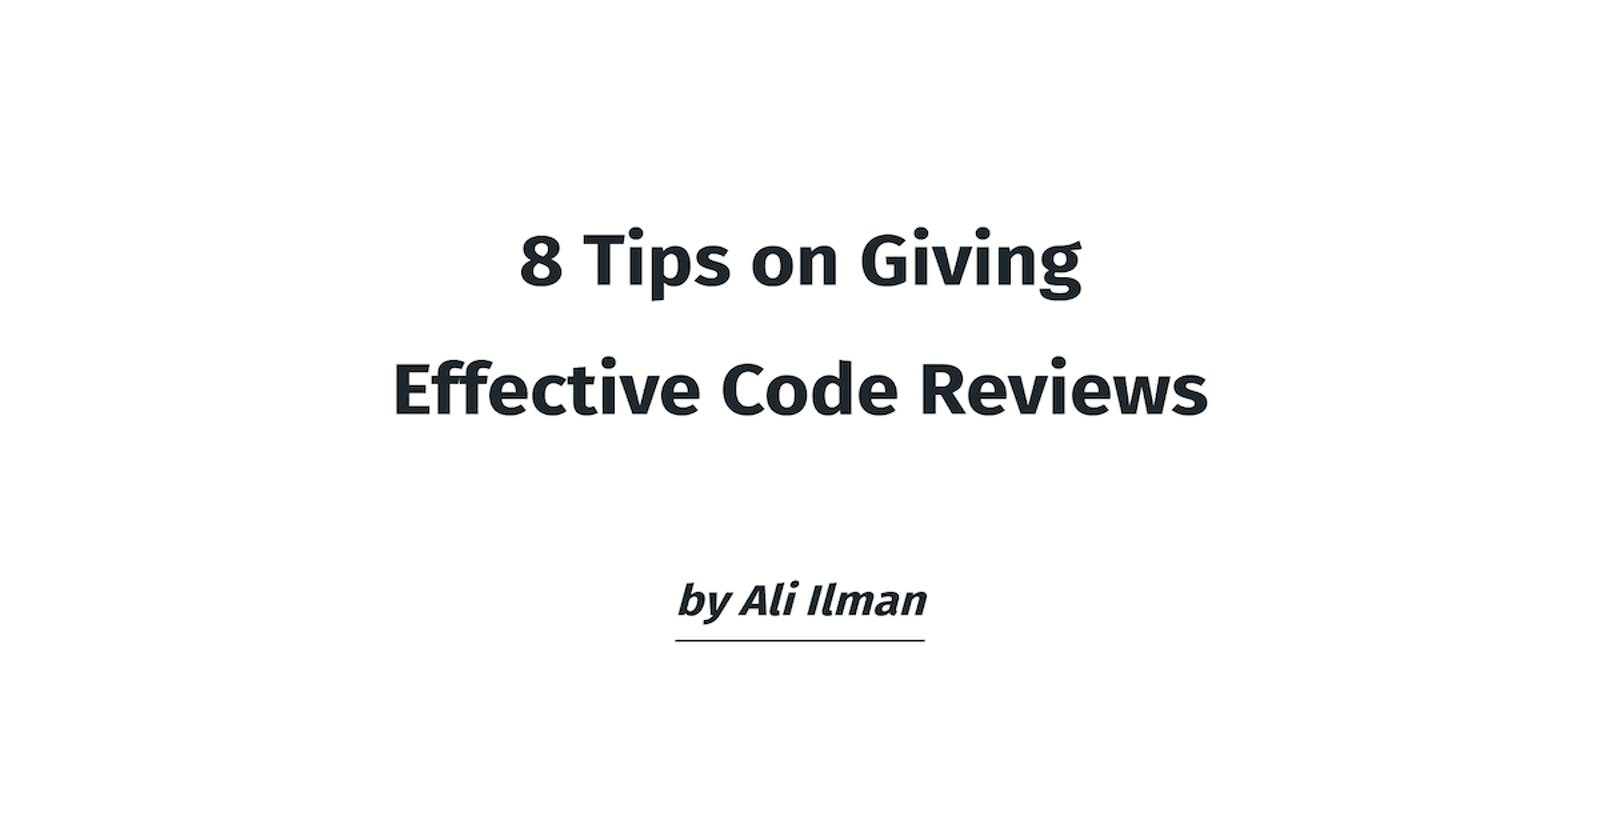 8 Tips on Giving Effective Code Reviews